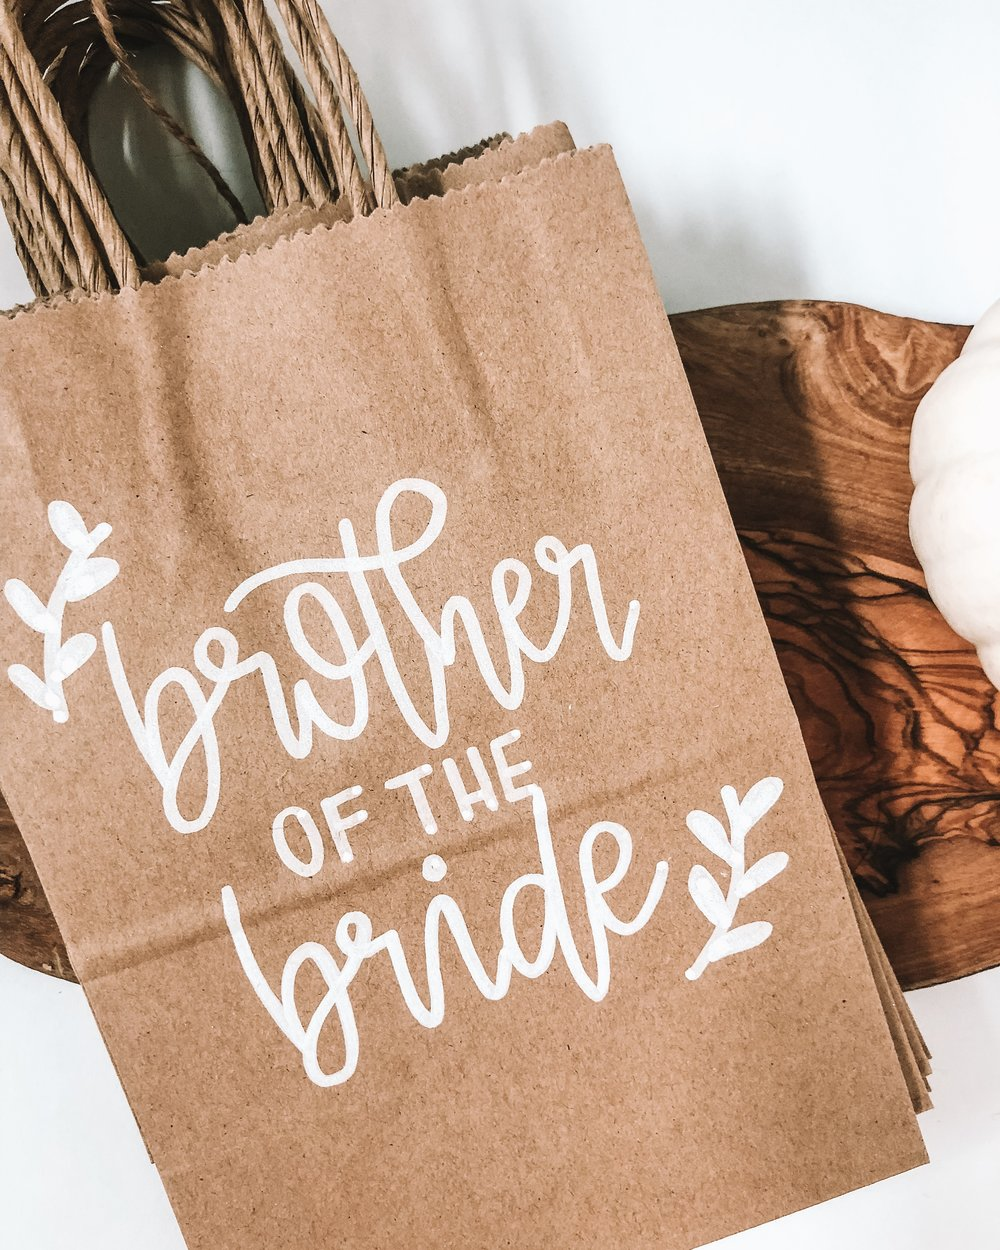 Custom Bridal Party Gift Bags and Wedding welcome party bags